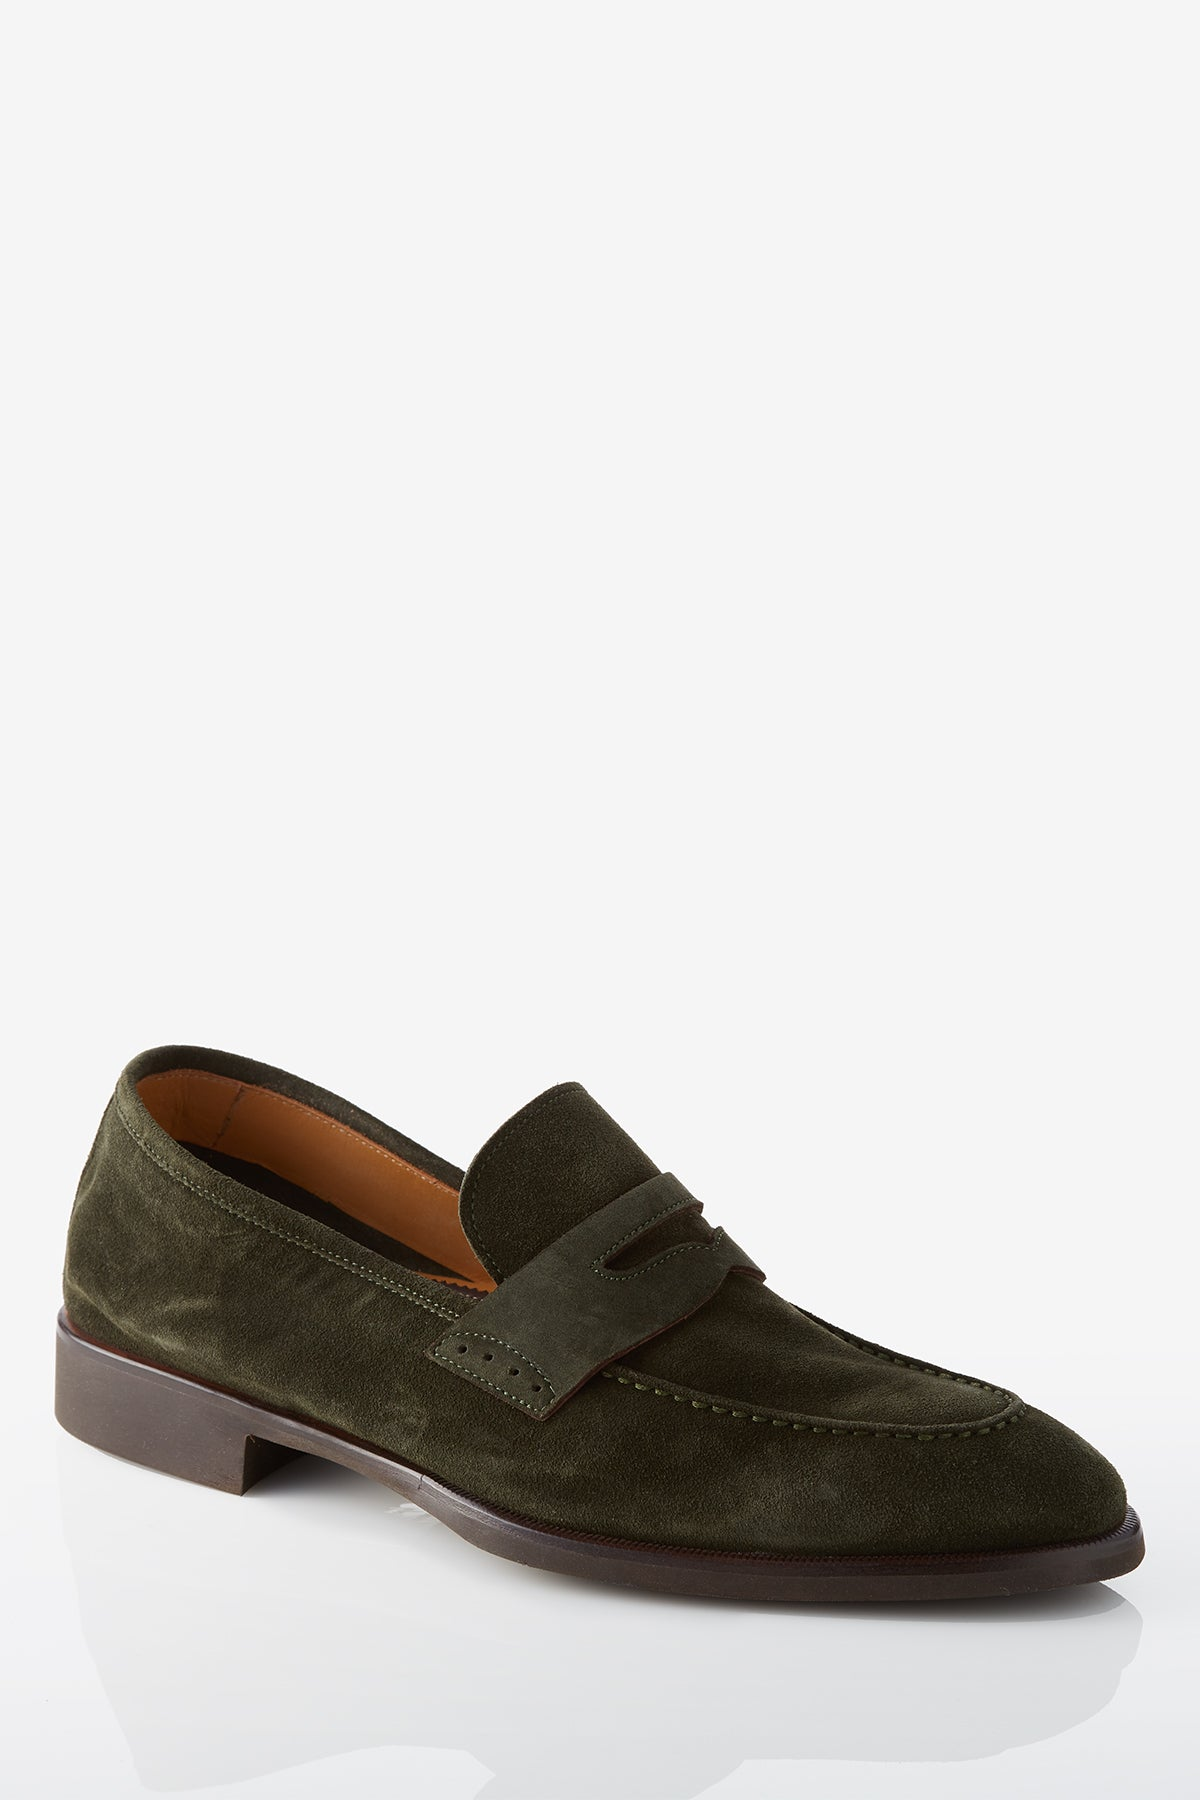 David August Suede Penny Loafer in Loden Dark Green Di Bianco